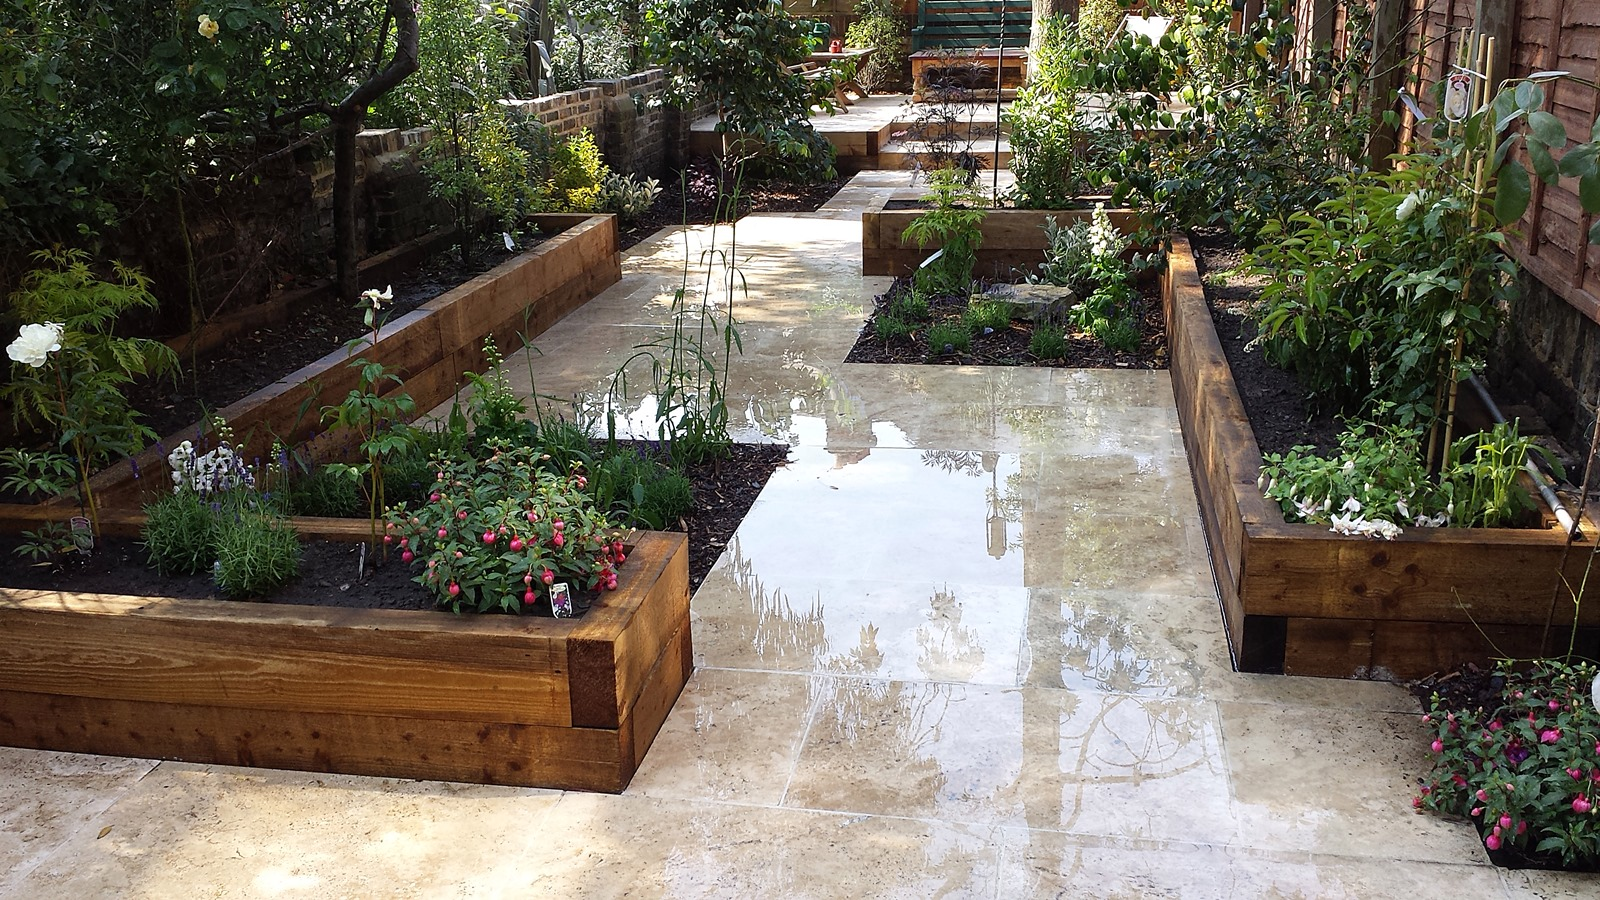 Landscaping archives london garden blog for Paving garden designs